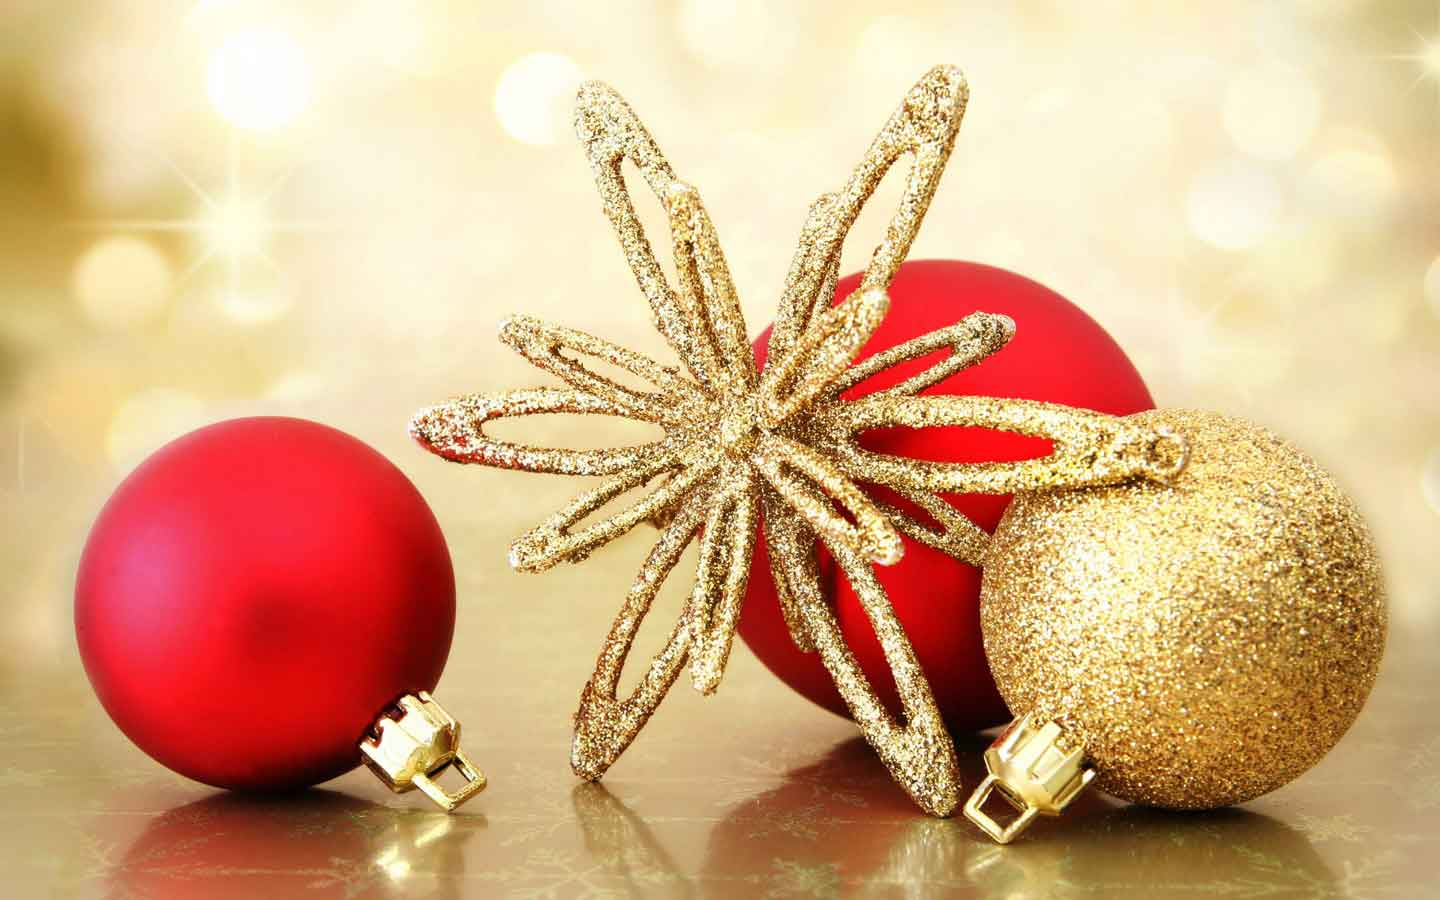 Stunning Christmas Ornaments wallpaper | 1440x900 | #26611